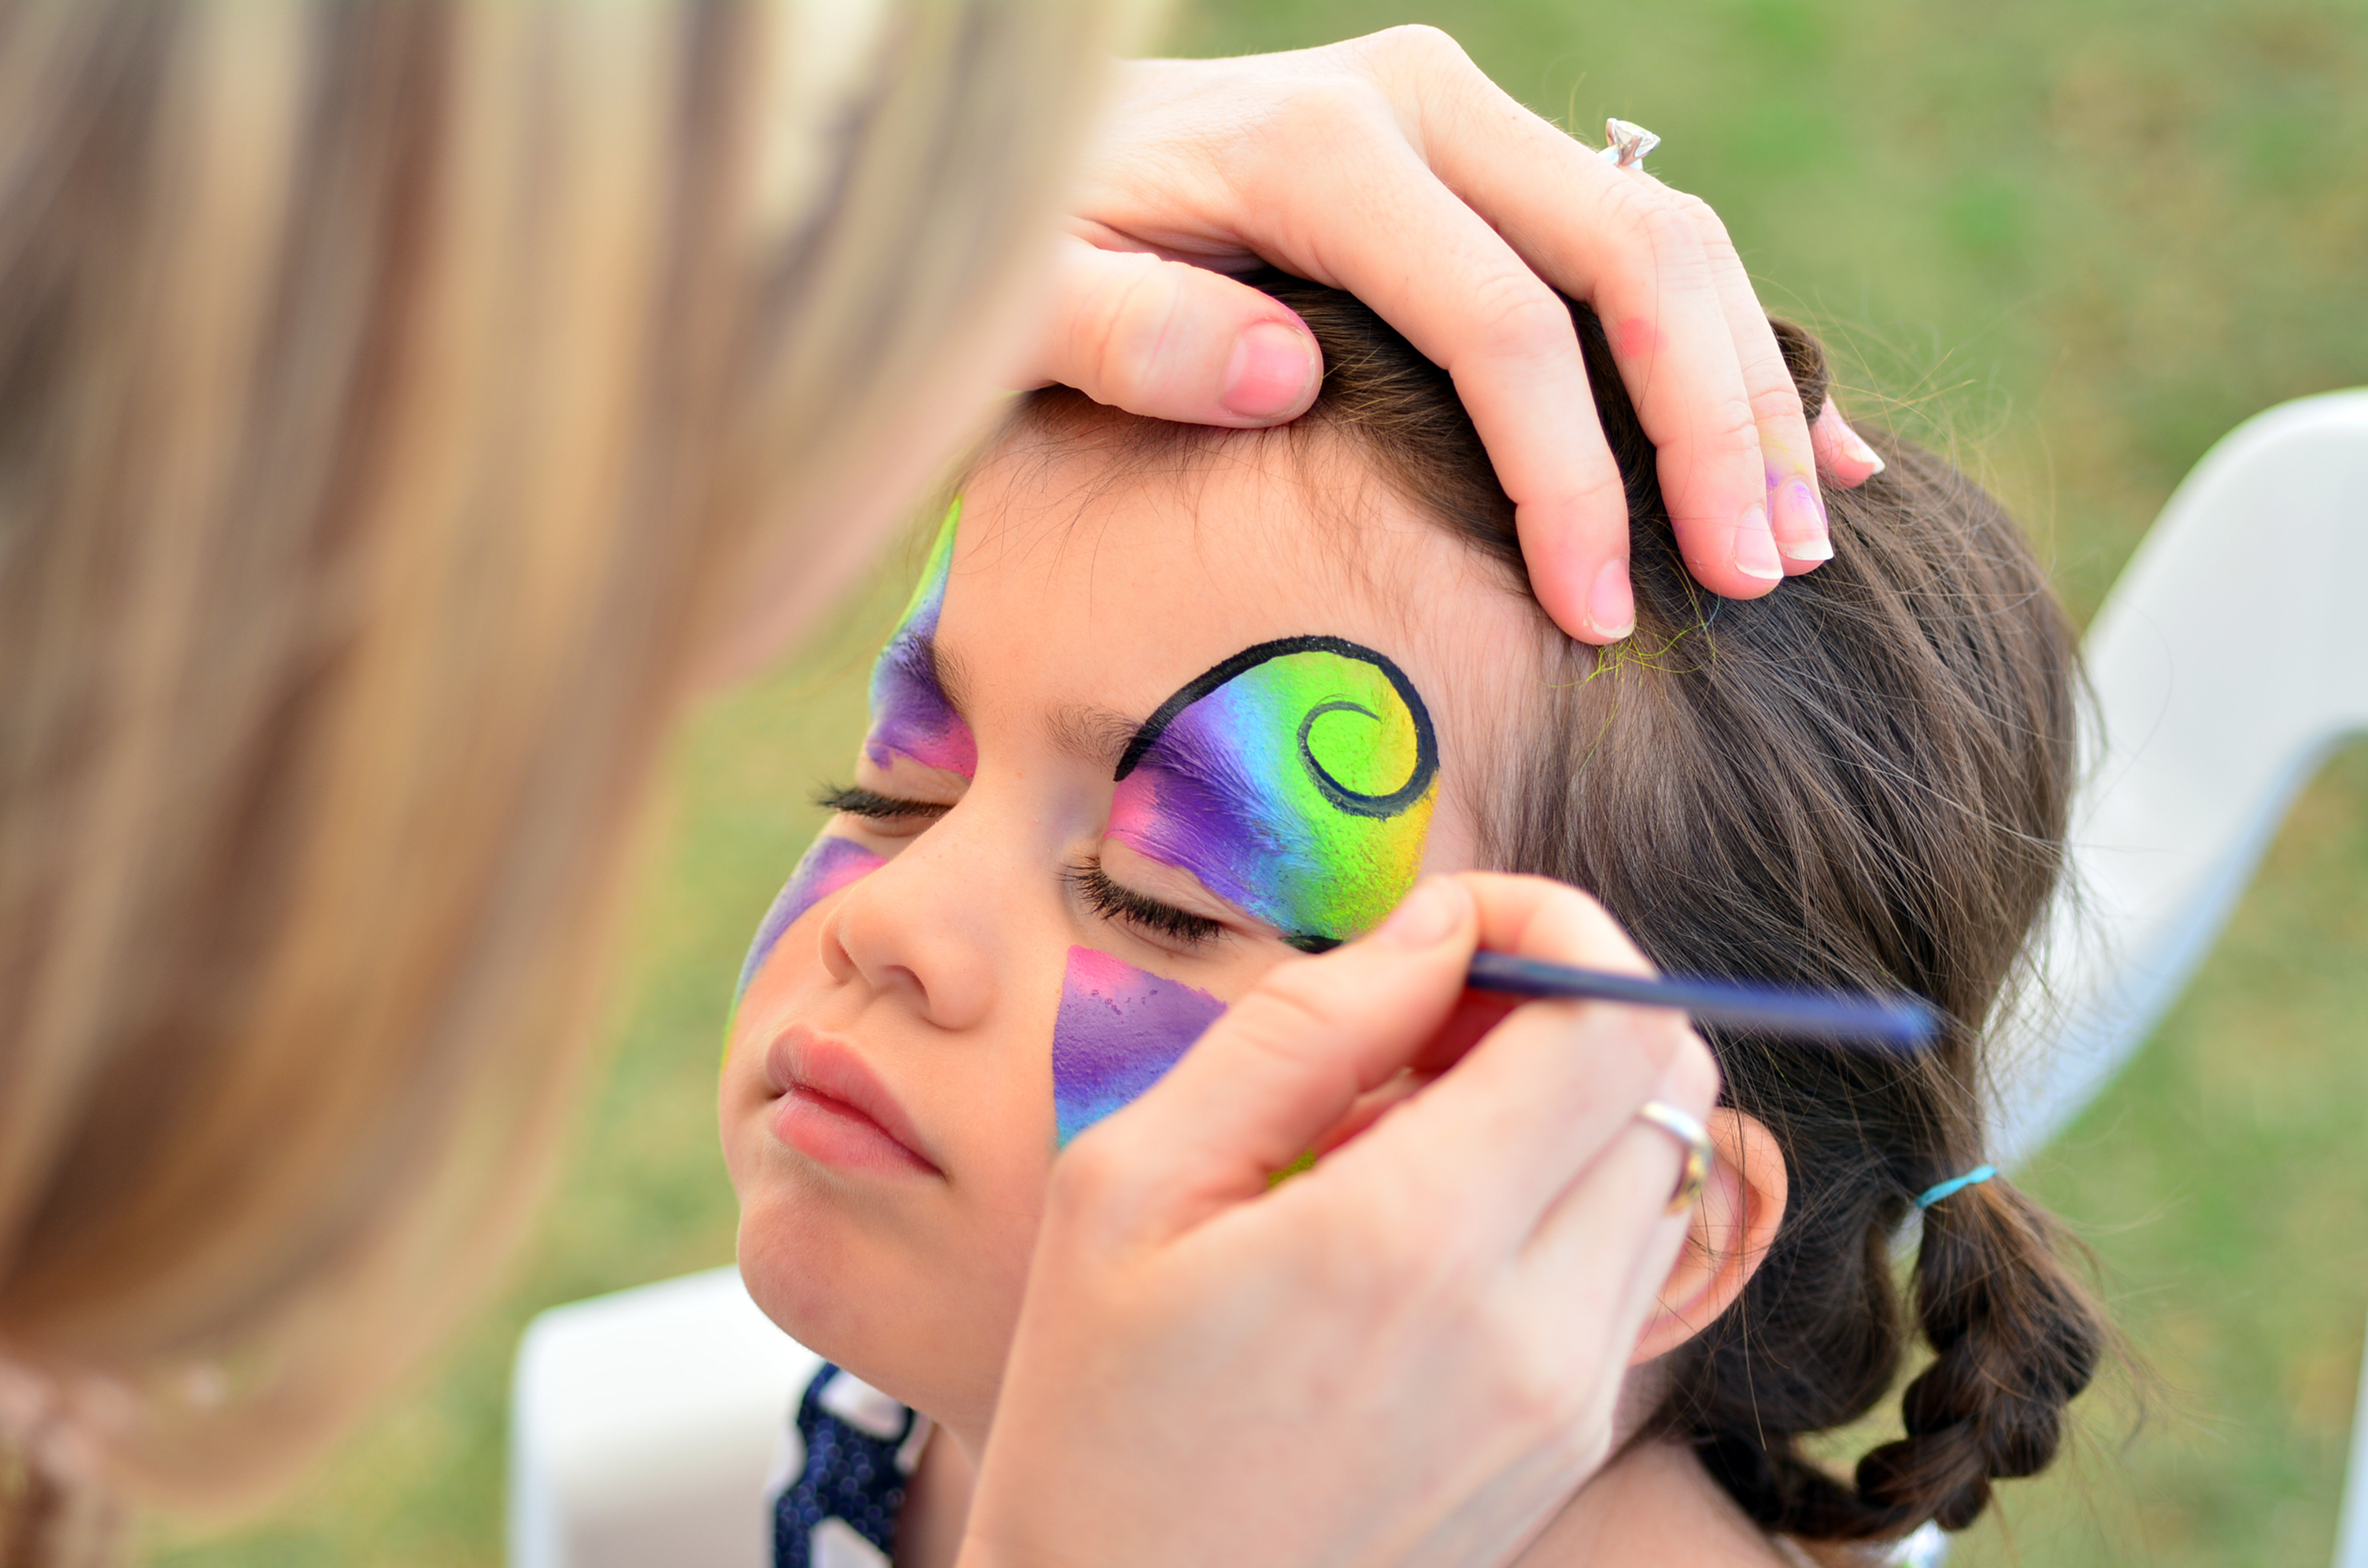 Young girl getting her face painted like